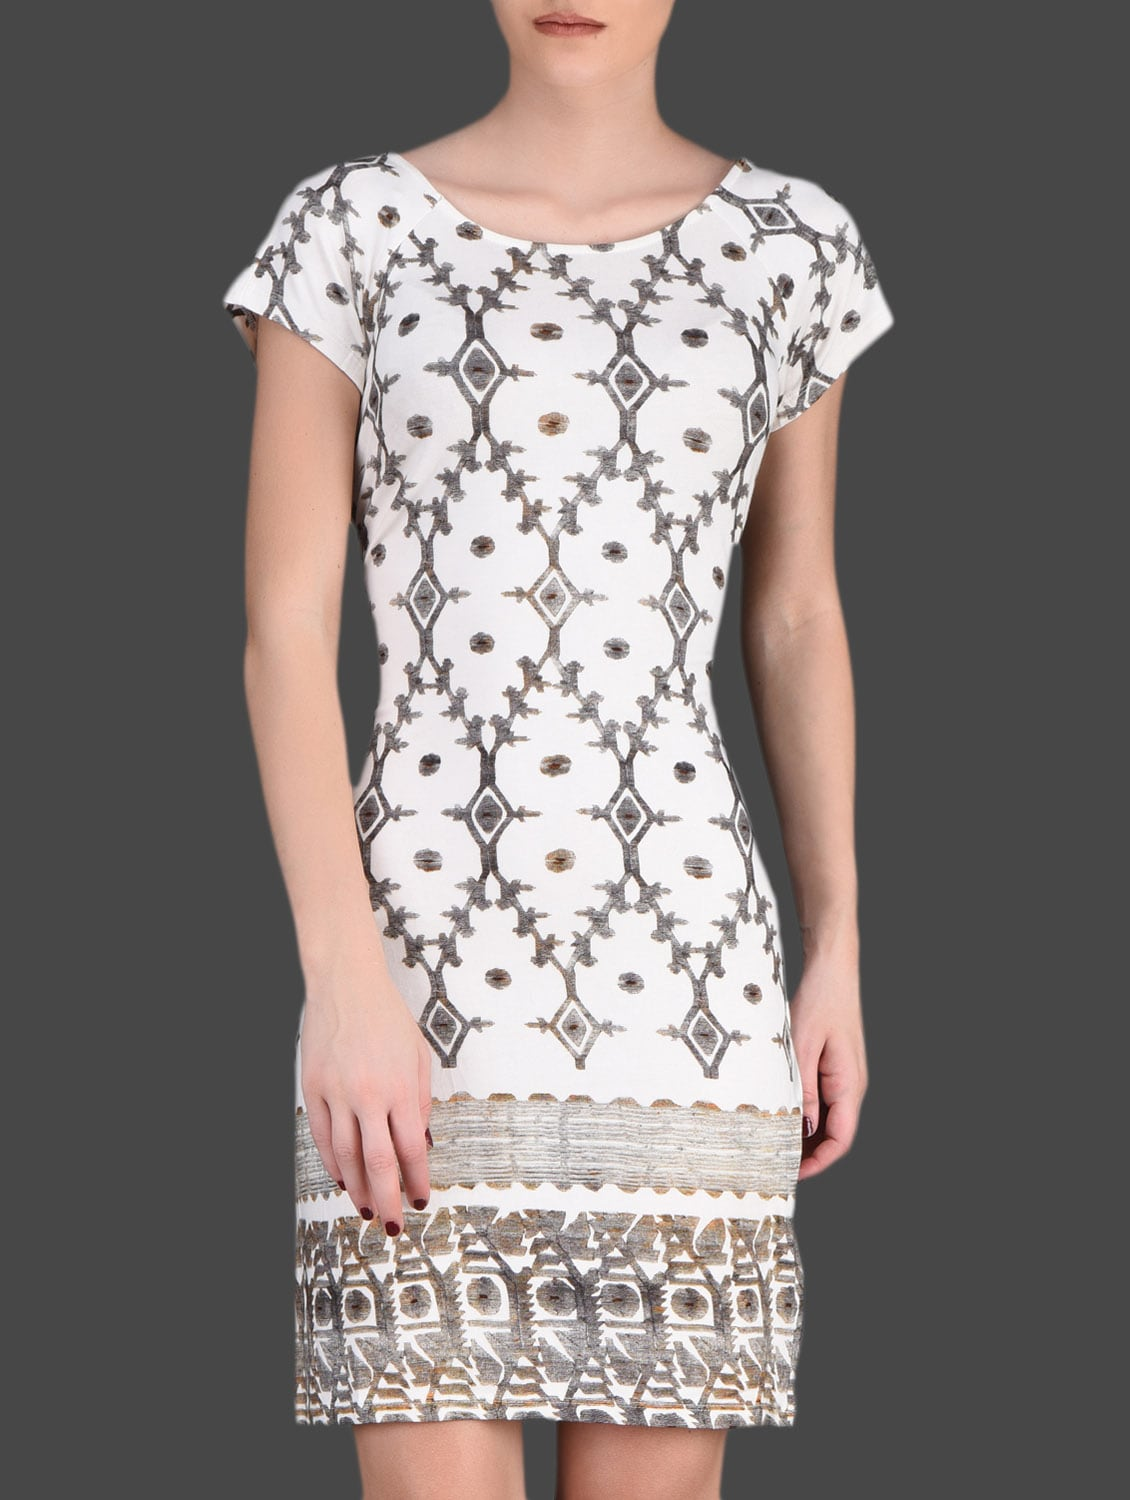 Gold Printed White Dress - LABEL Ritu Kumar